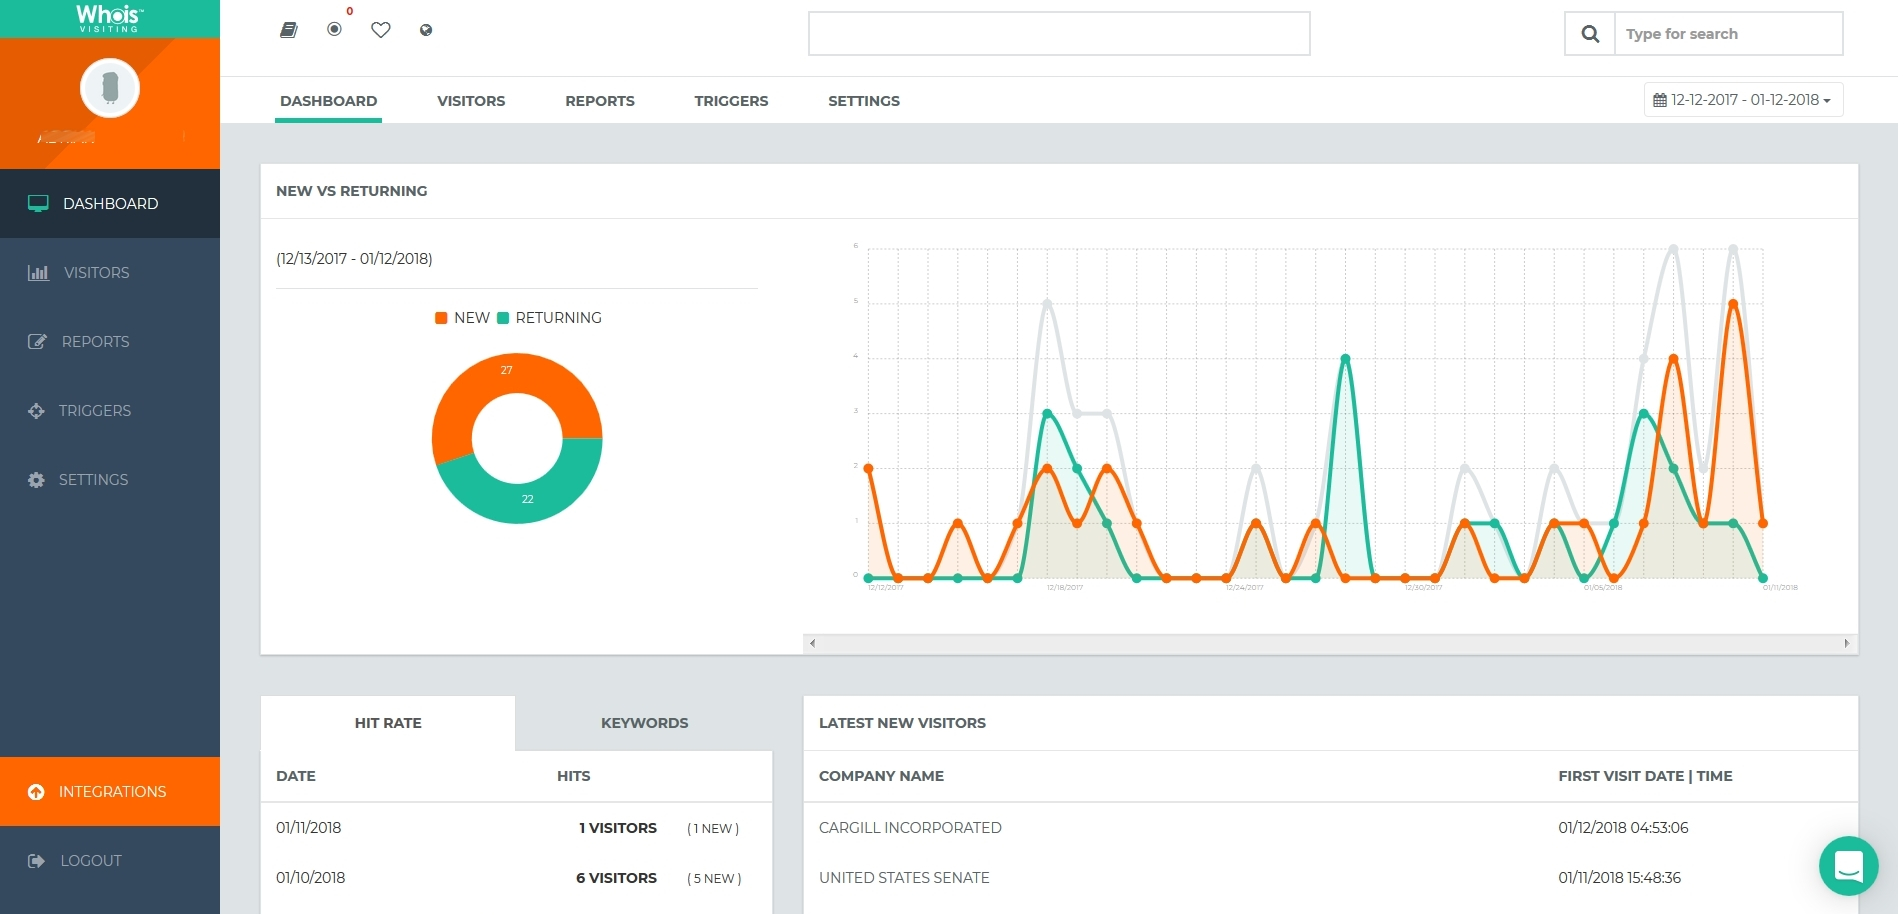 Whois Visiting review web visitor tracking dashboard v3